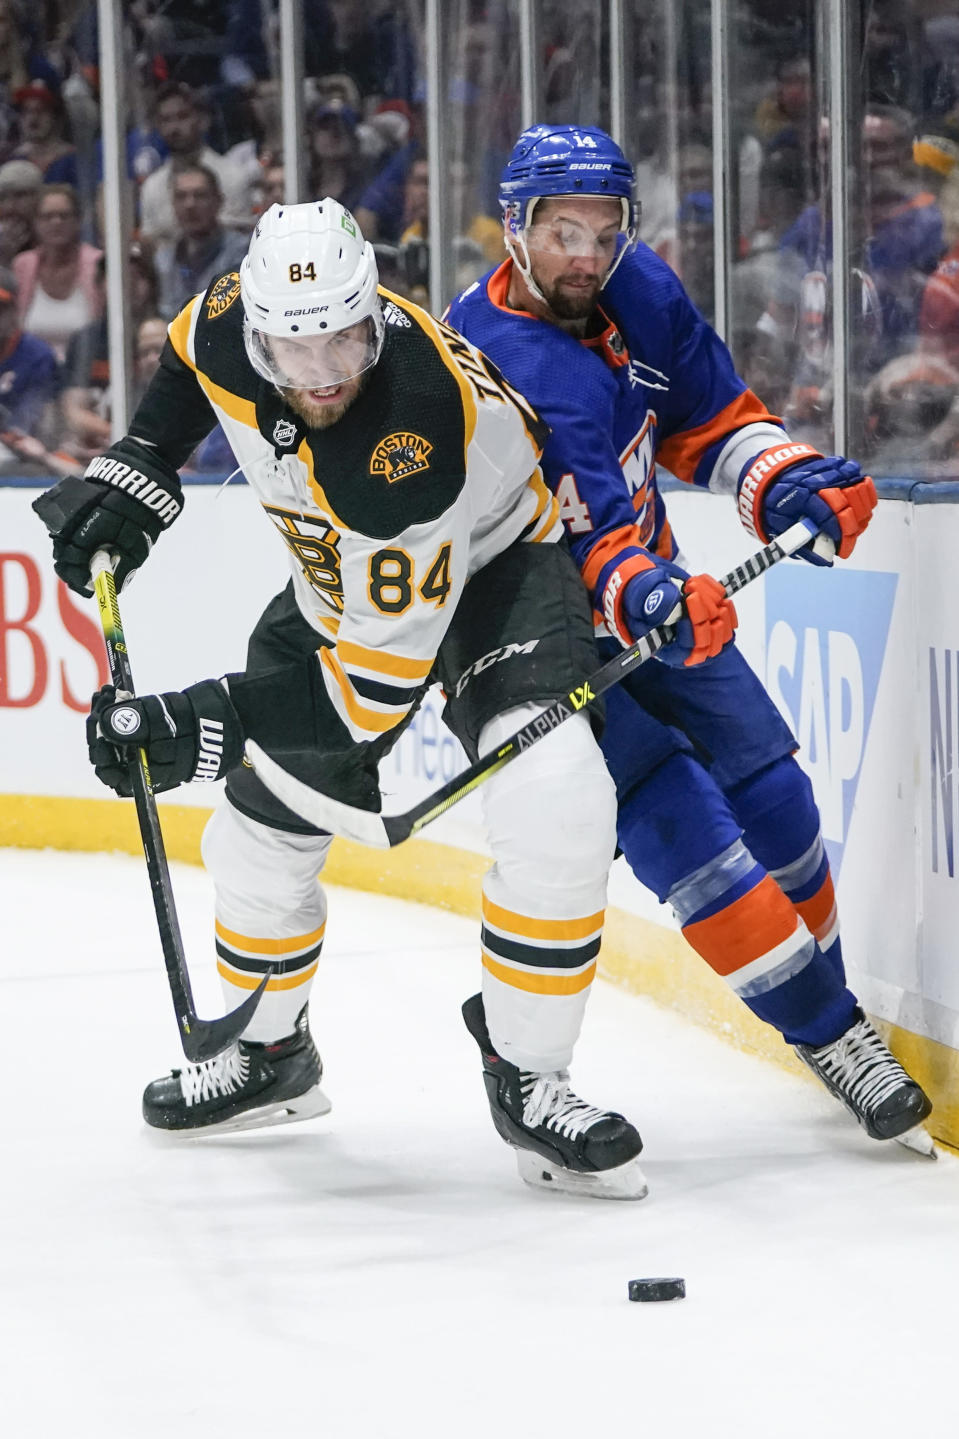 Boston Bruins' Jarred Tinordi (84) fights for control of the puck with New York Islanders' Travis Zajac (14) during the second period of Game 4 during an NHL hockey second-round playoff series Saturday, June 5, 2021, in Uniondale, N.Y. (AP Photo/Frank Franklin II)